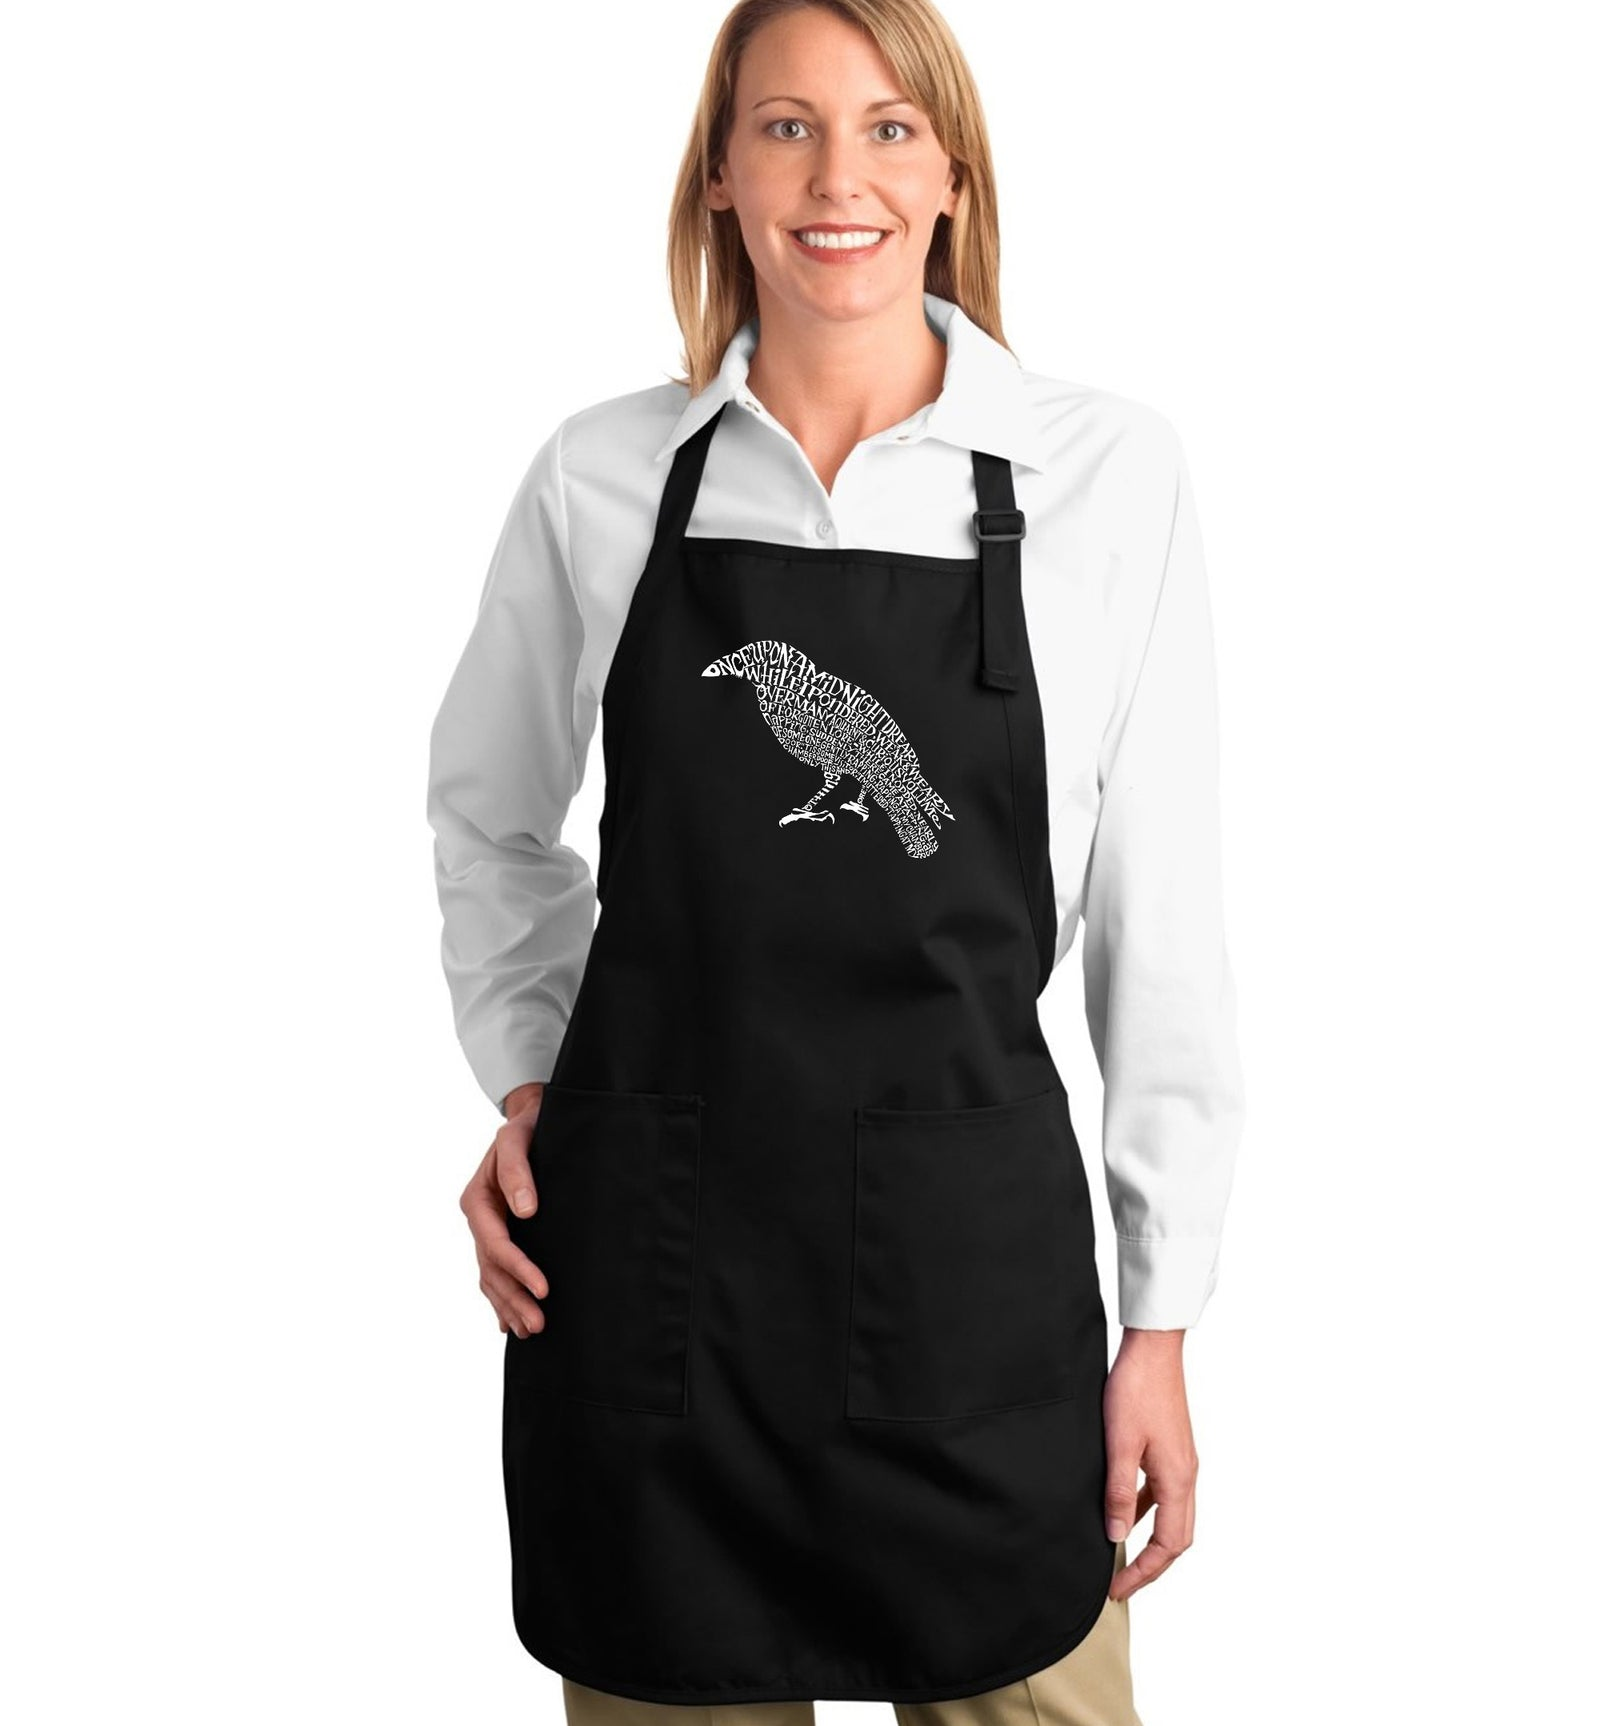 Full Length Word Art Apron - Edgar Allen Poe's The Raven